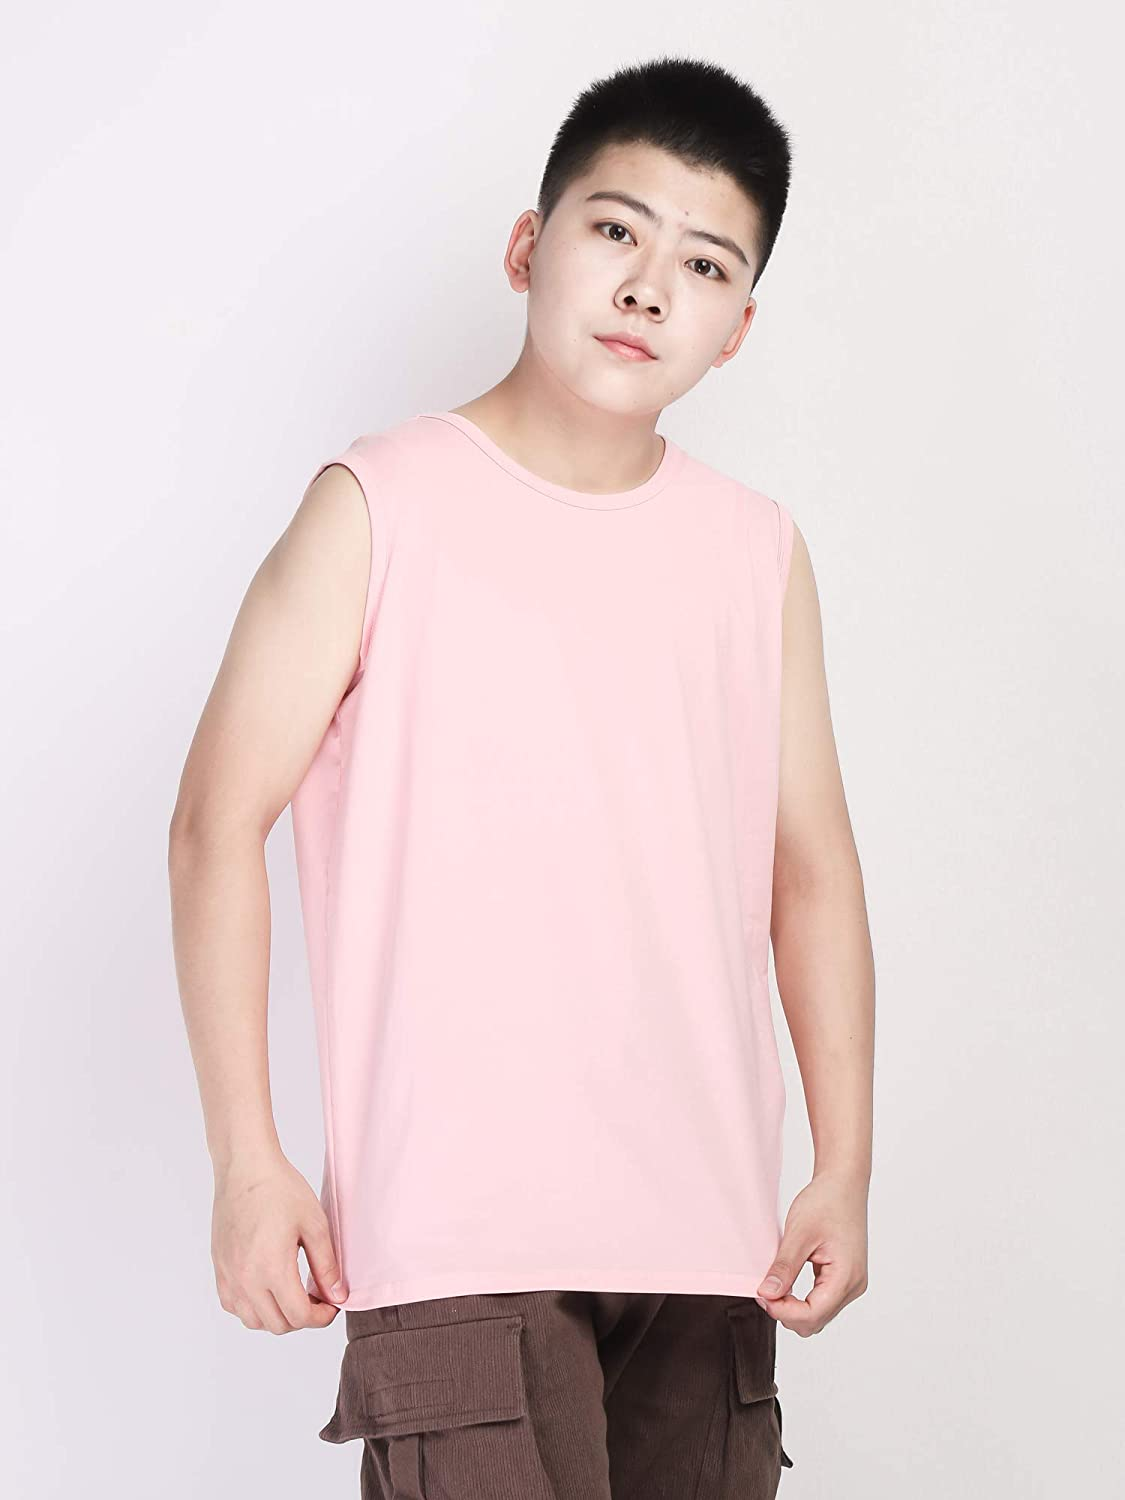 BaronHong Wide Shouldered Cotton Outerwear Chest Binder Tank Top for Tomboy Trans Lesbian